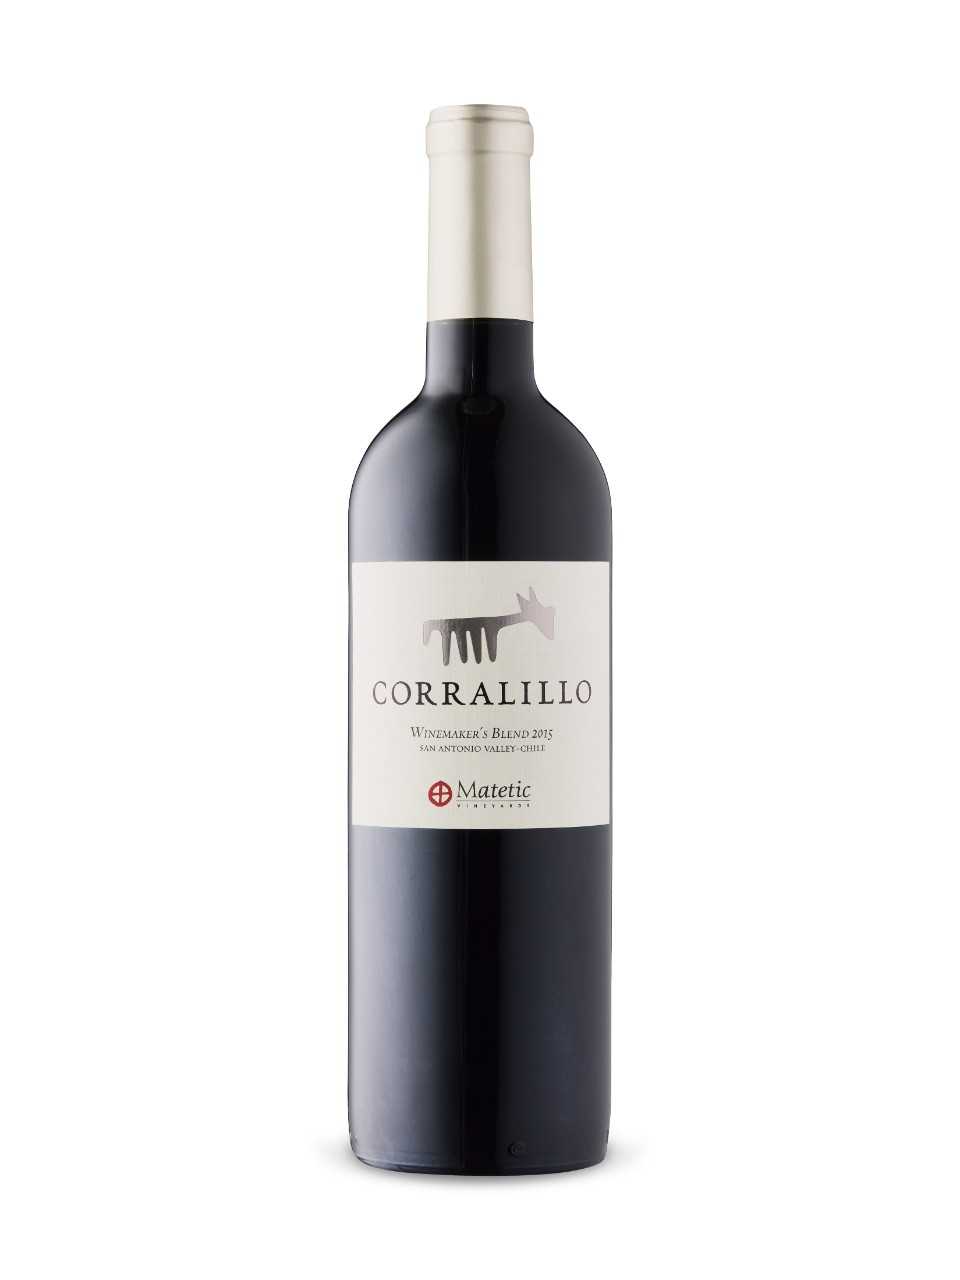 Corralillo Winemaker's Blend Matetic 2014